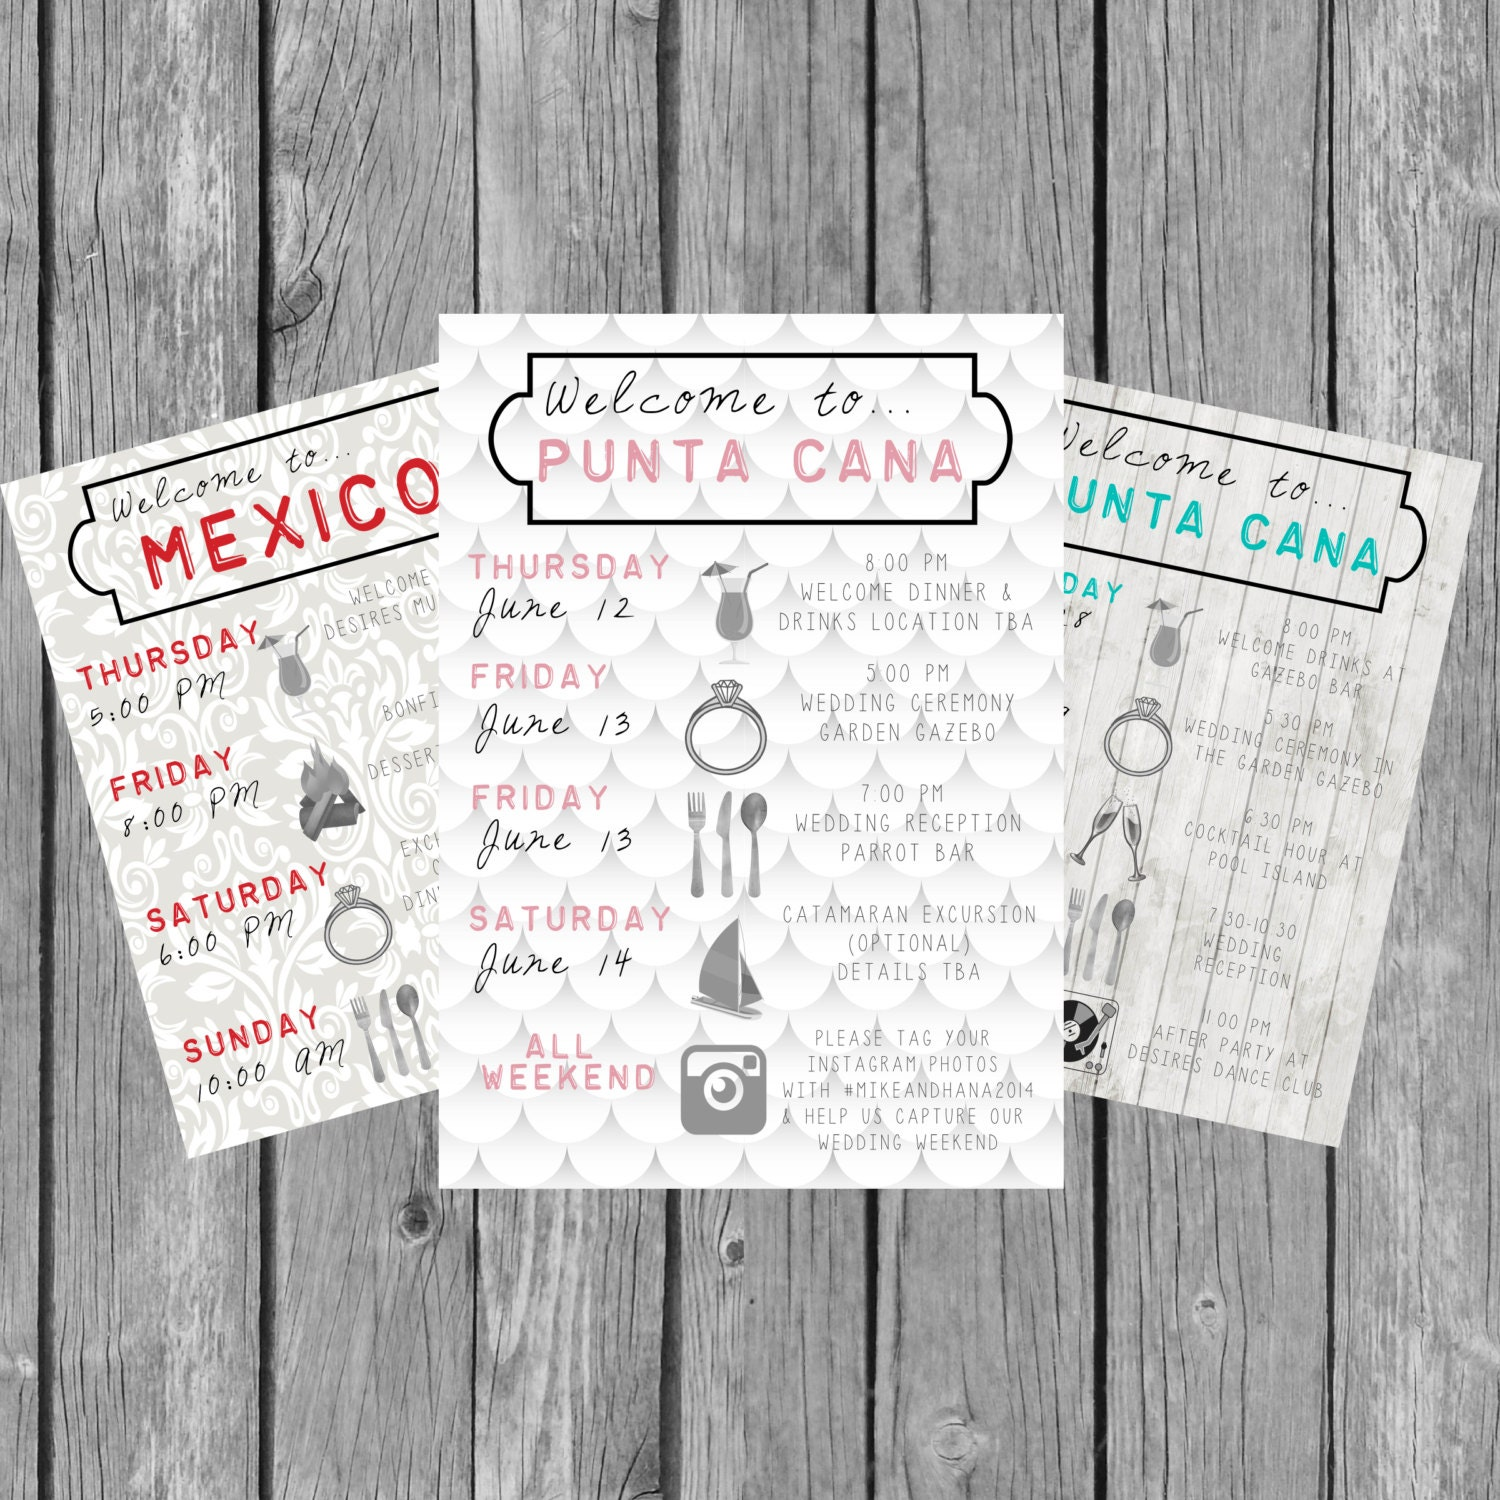 Wedding Gift Bag Itinerary : Destination Wedding Welcome Bag Guest Itinerary / Timeline of